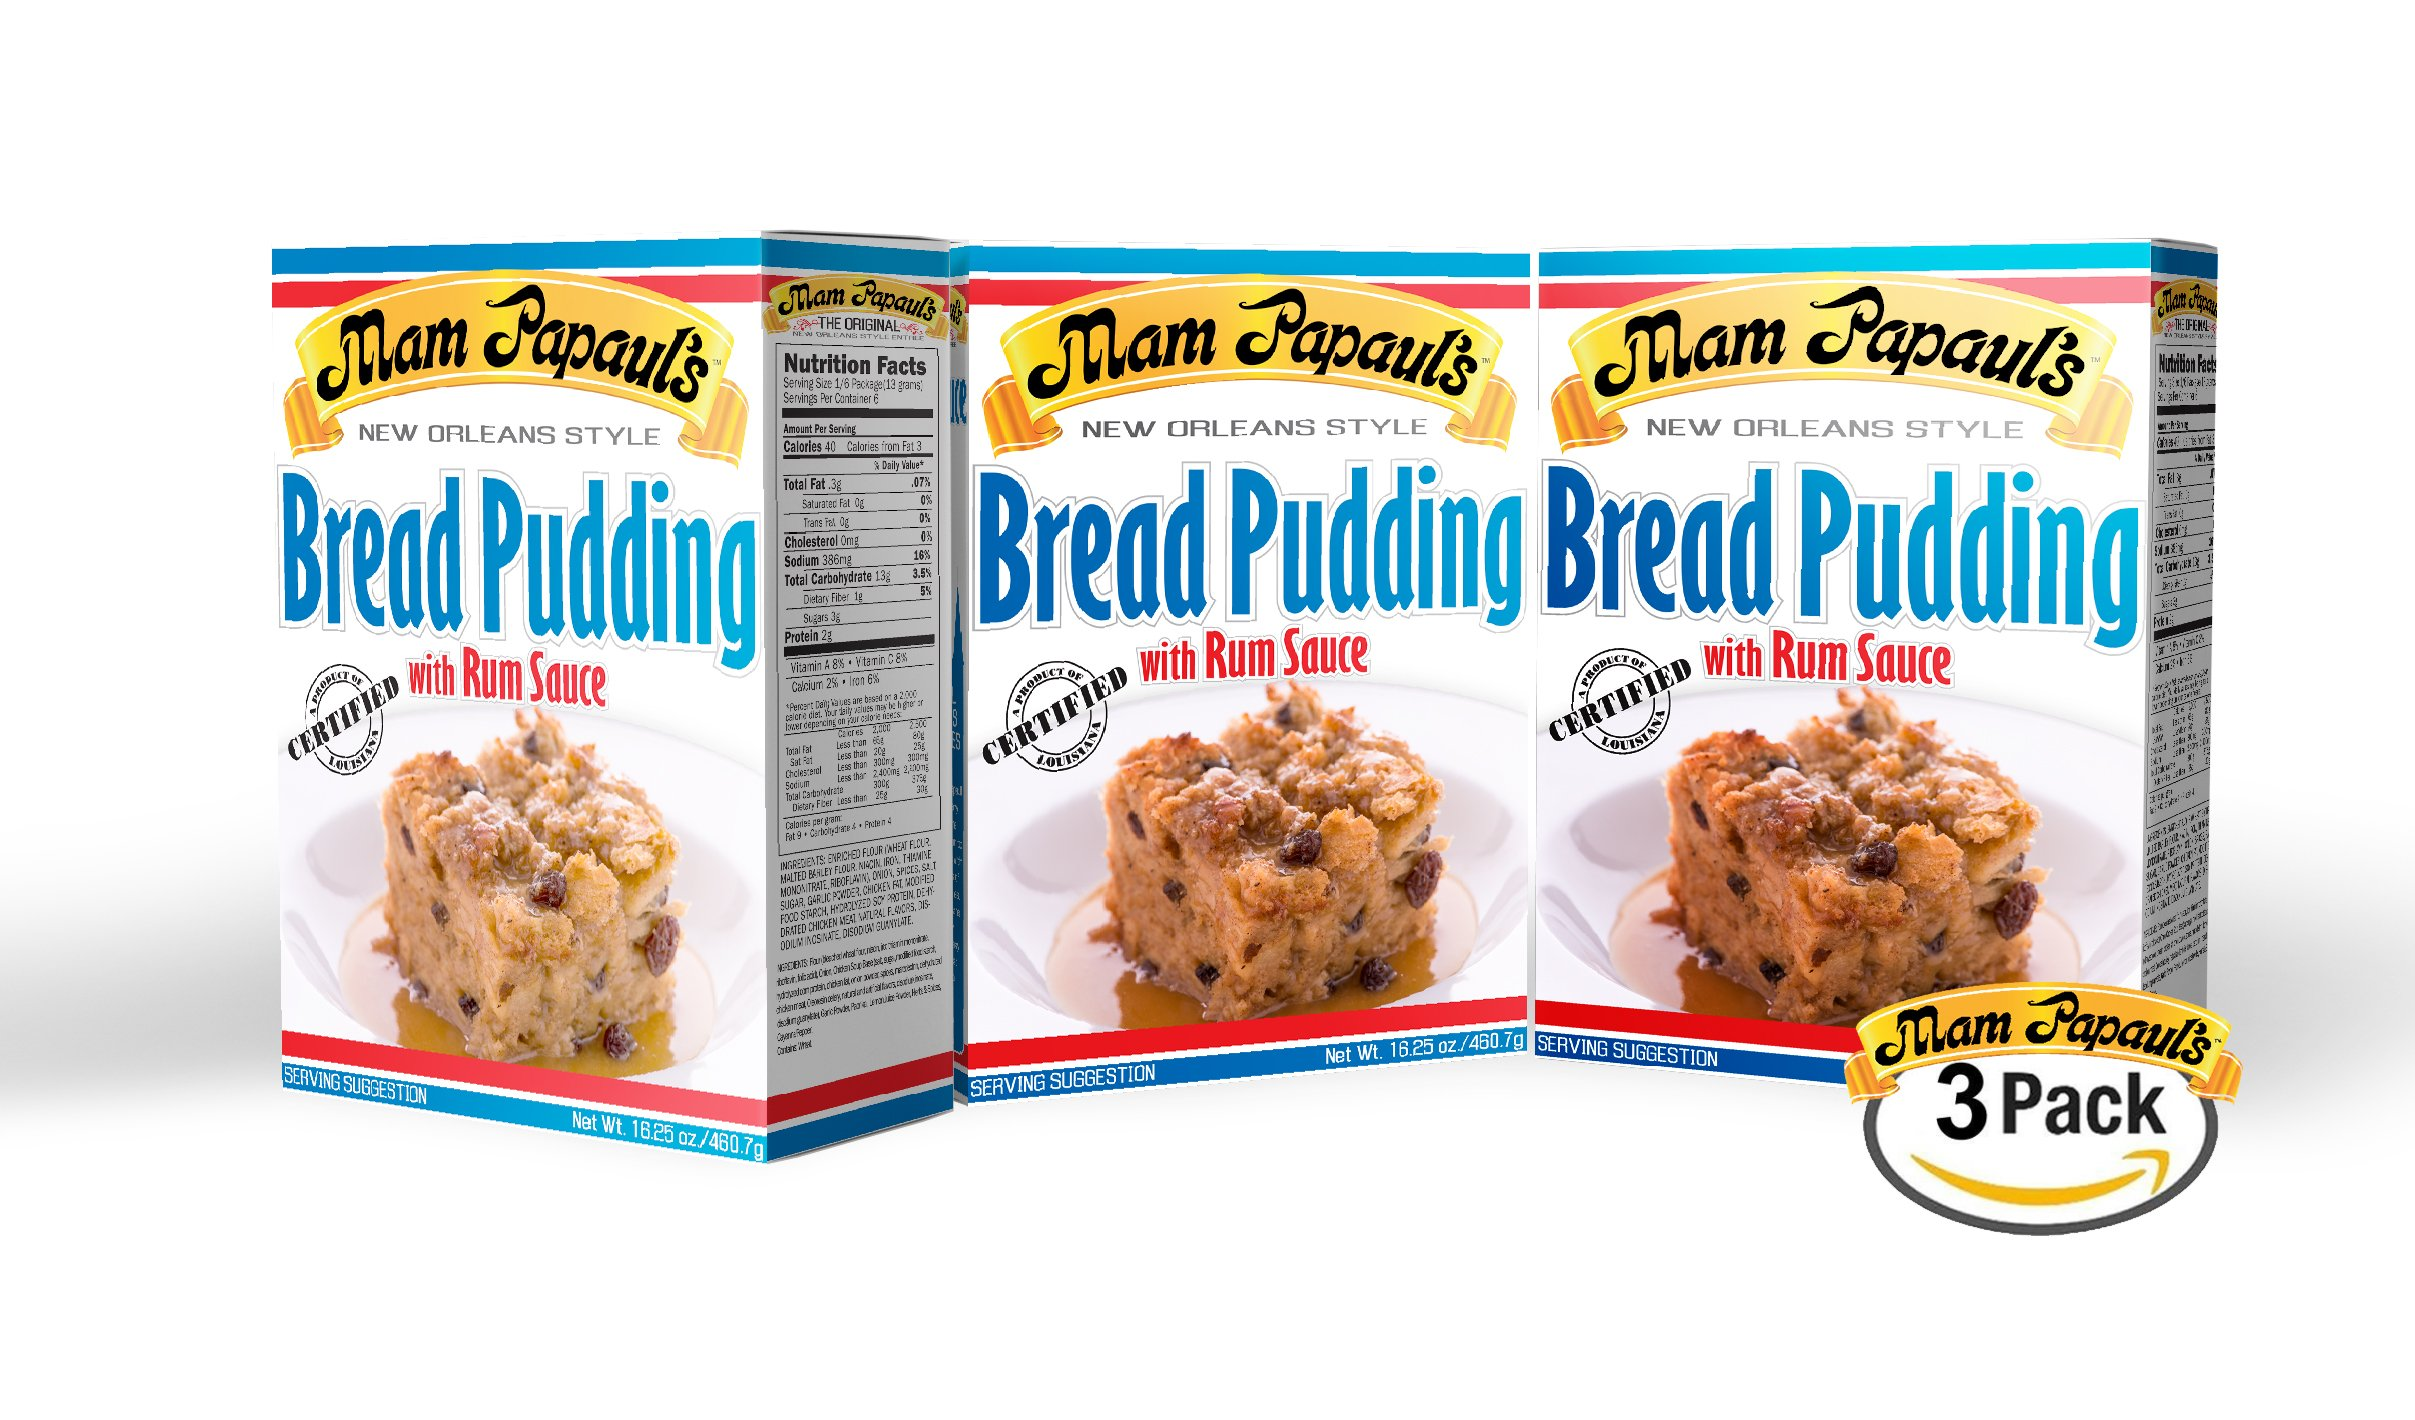 Mam Papaul's Bread Pudding w/ Rum Sauce Mix 3pk by Mam Papaul's